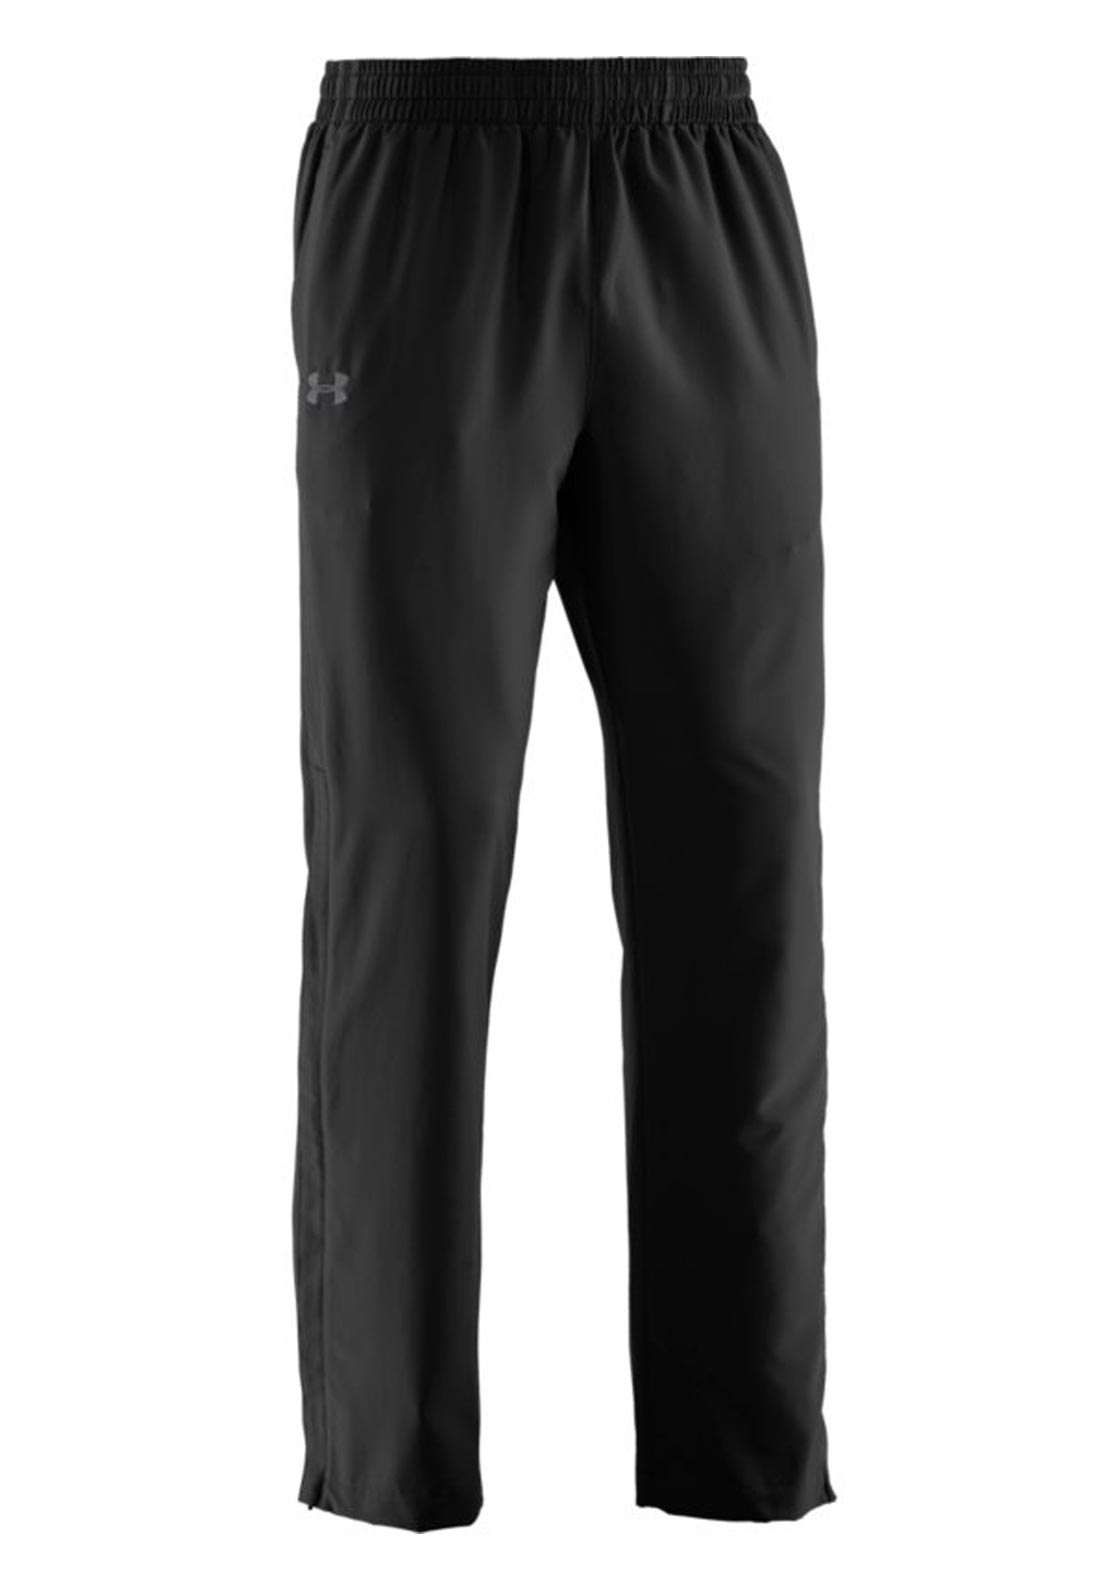 Under Armour Mens Jogging Bottoms, Black